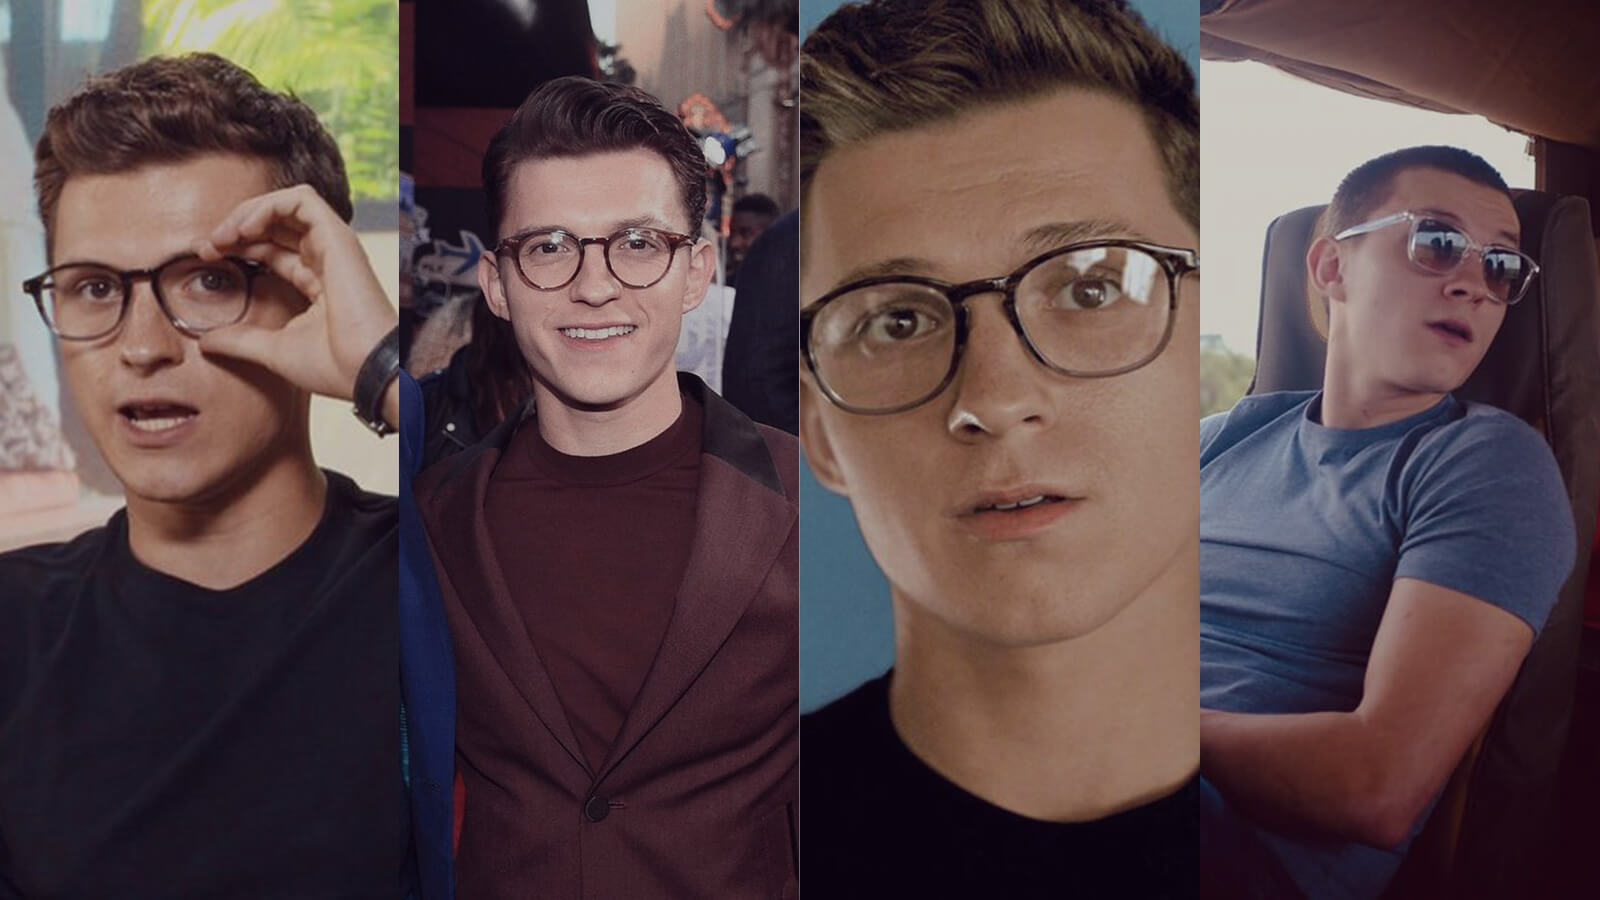 Get the look in glasses: Tom Holland Edition